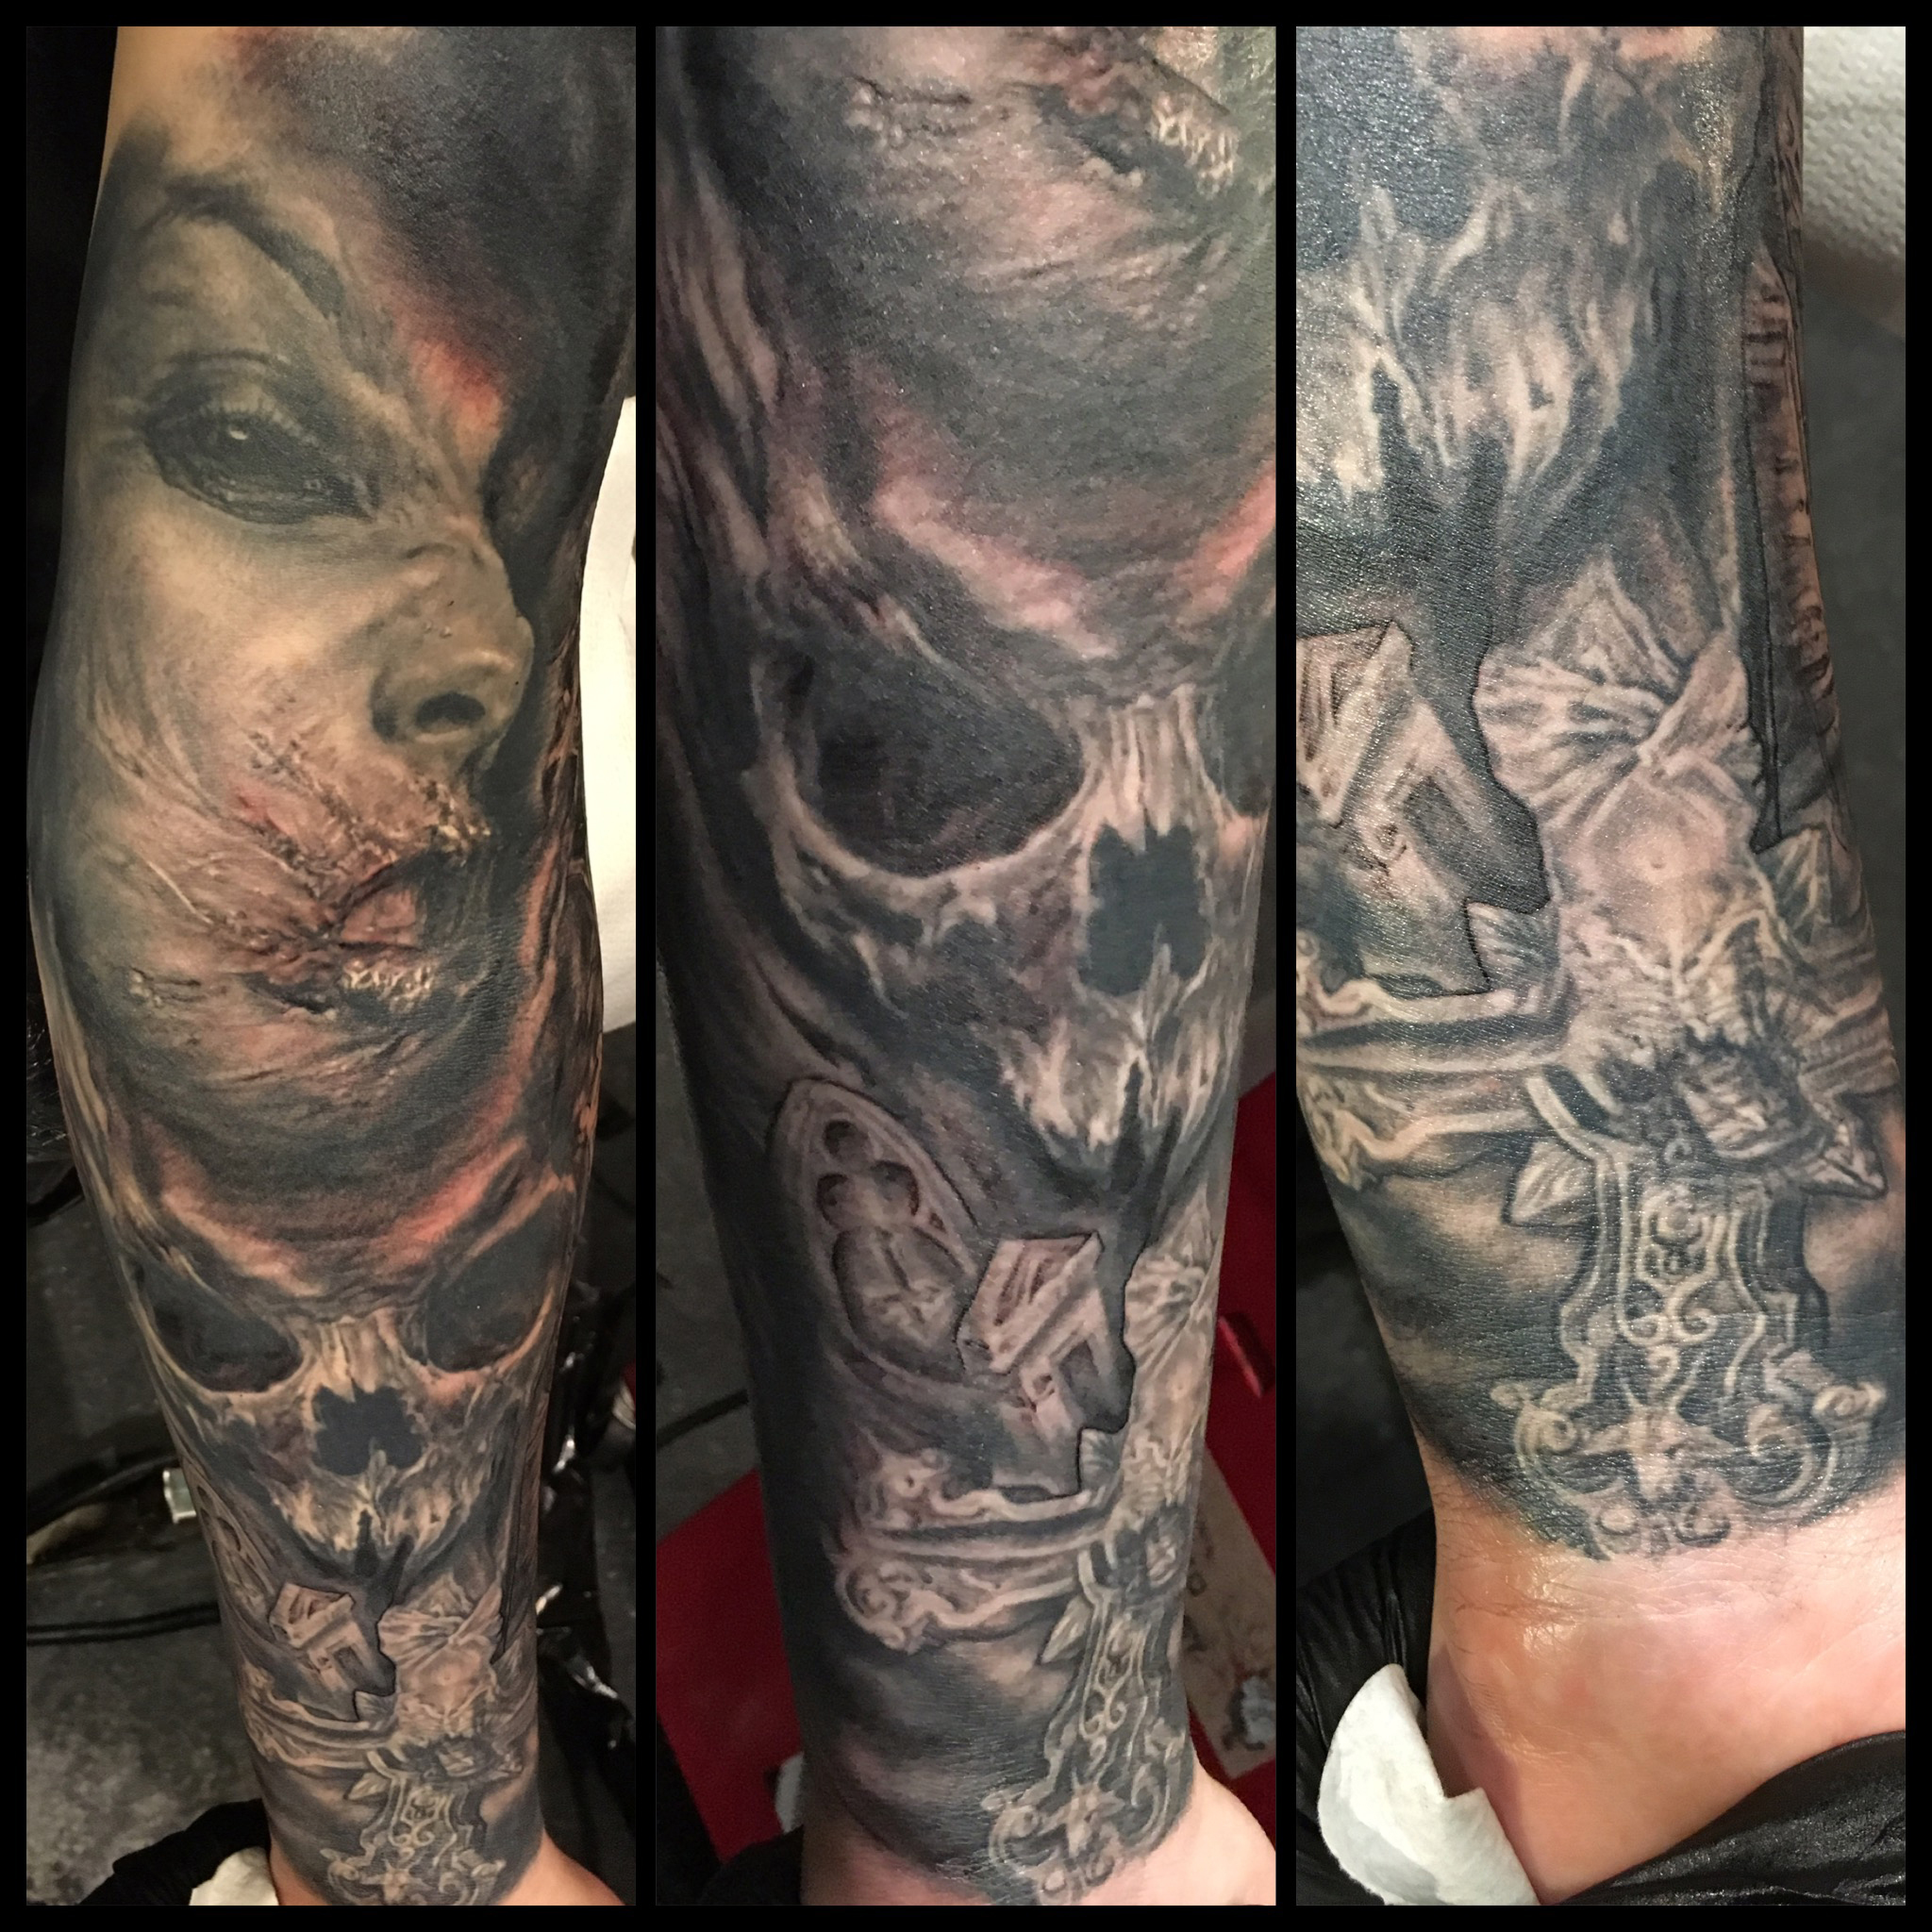 Black and Grey 'All Things Unholy' Horror Sleeve Tattoo, (some fresh, some healed) sleeve in progress